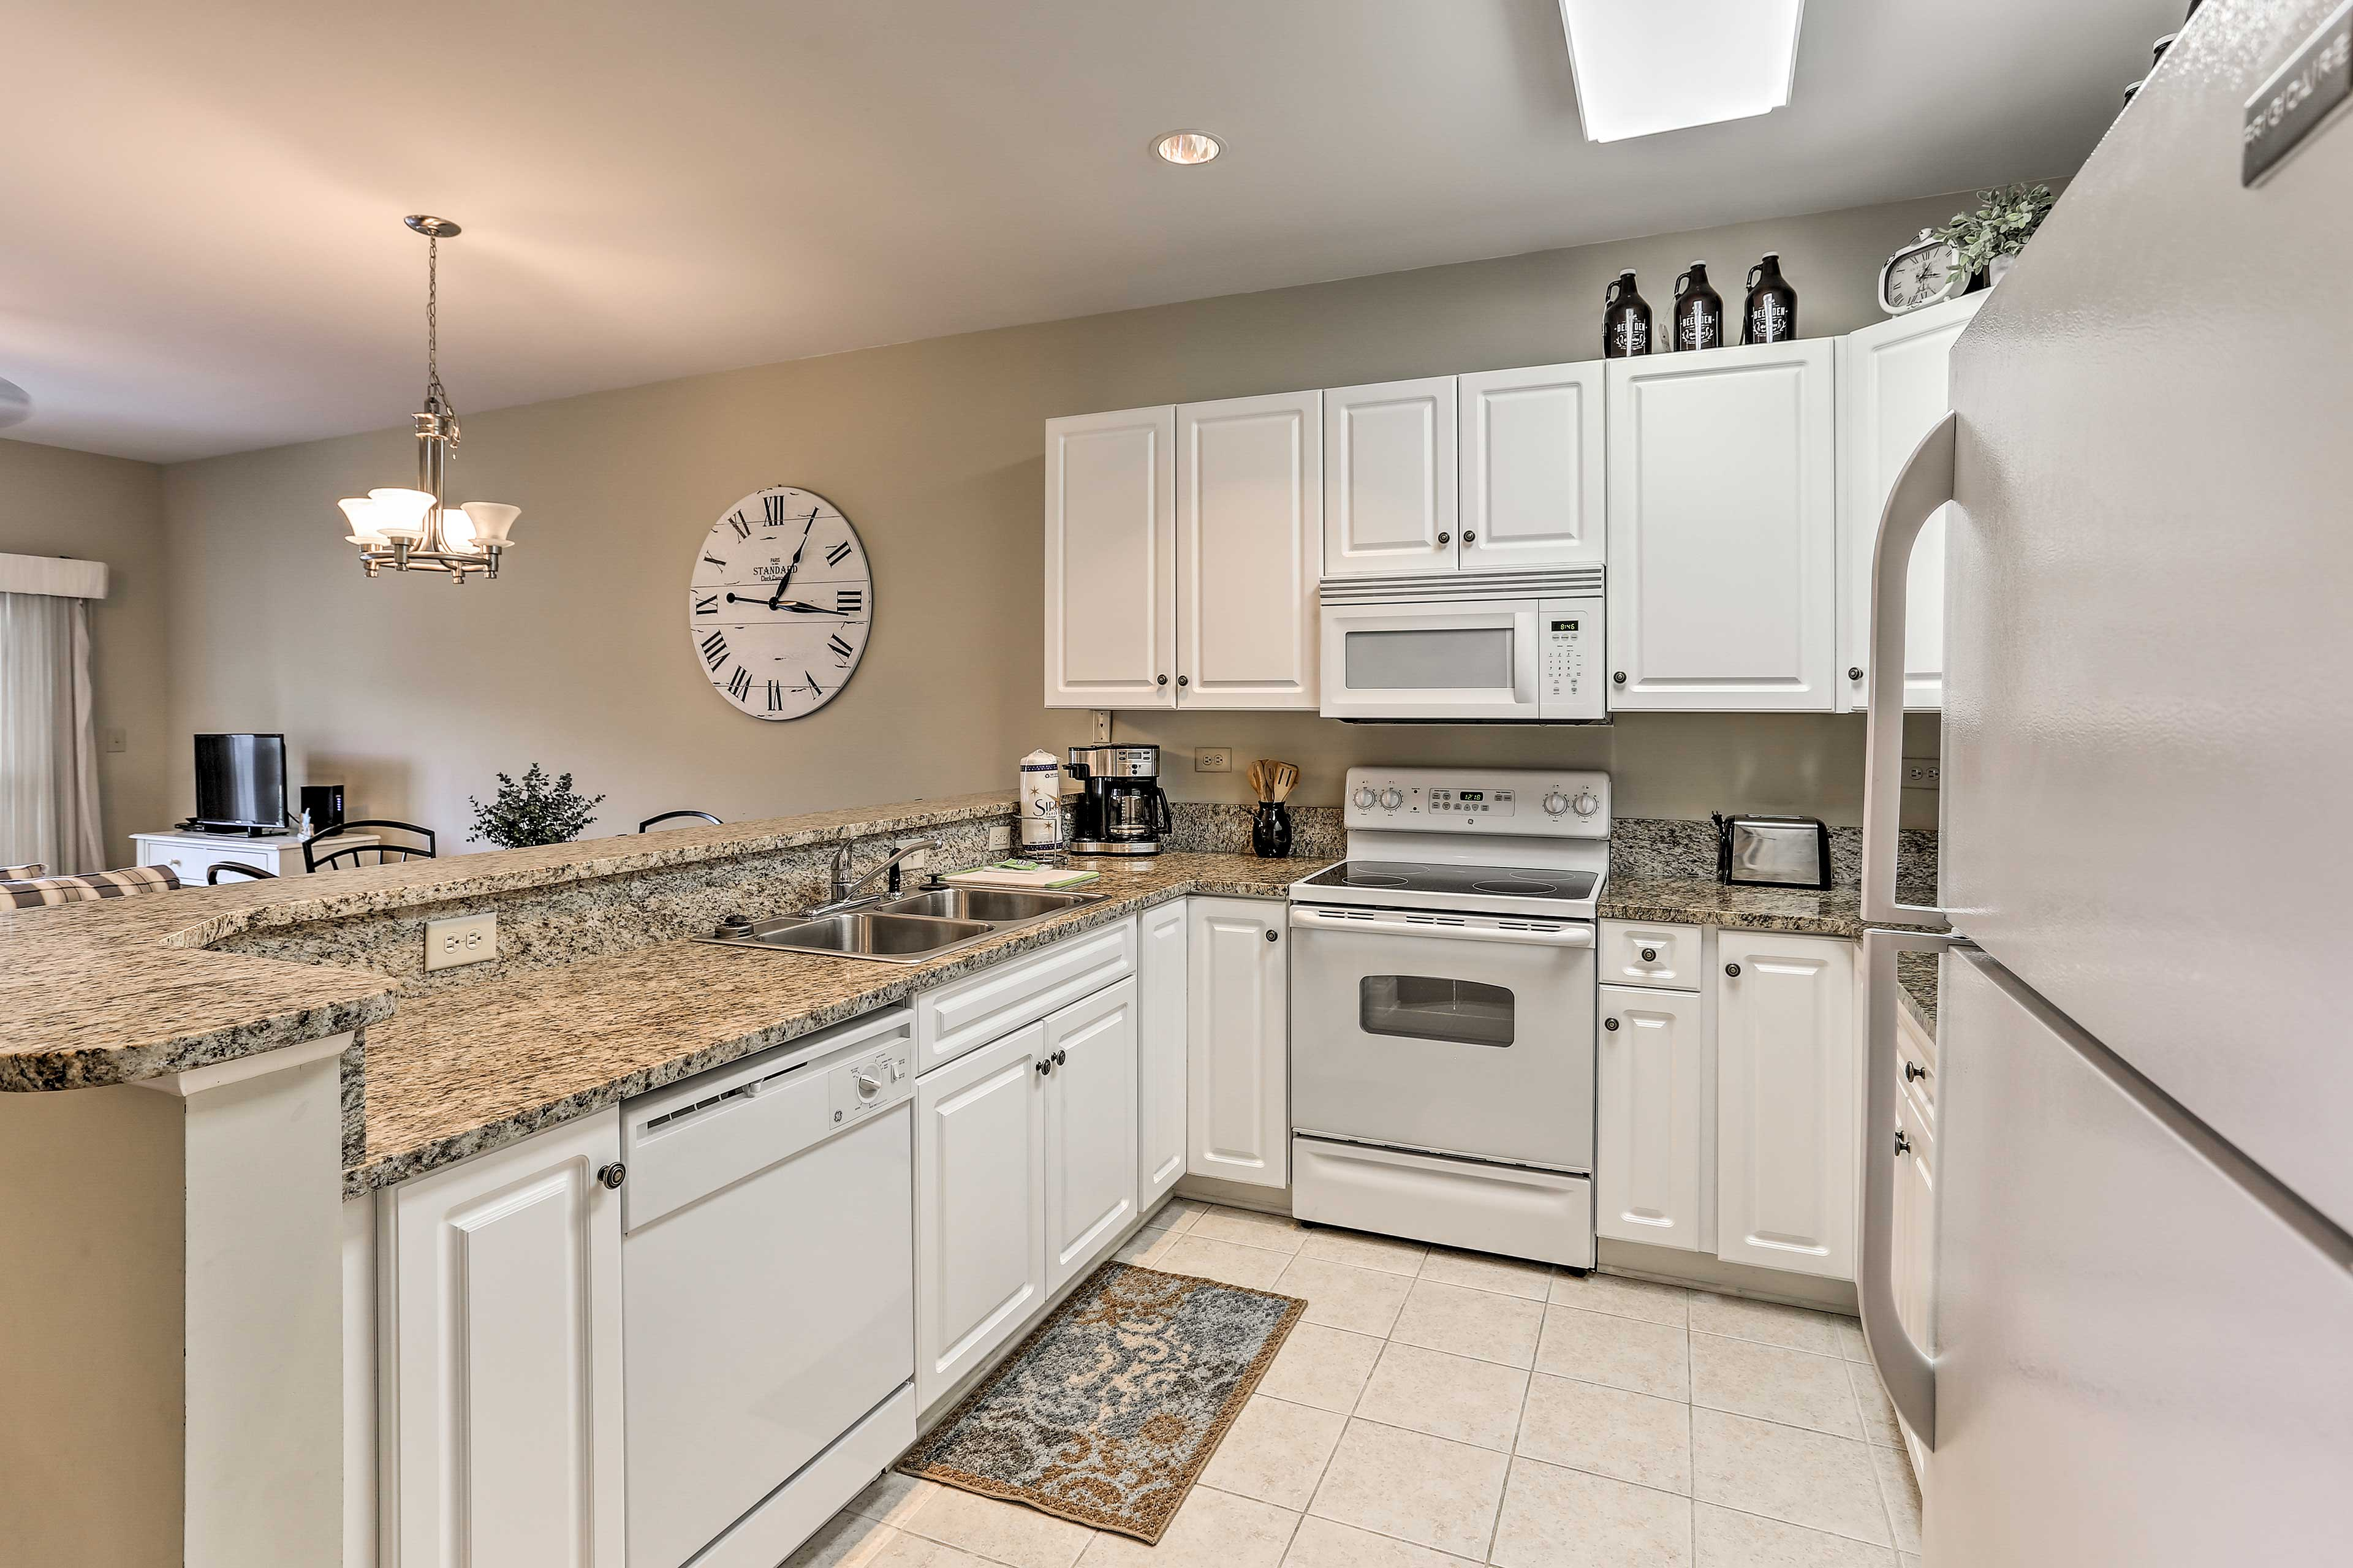 The fully equipped kitchen features granite countertops and timeless shaker-style cabinetry.